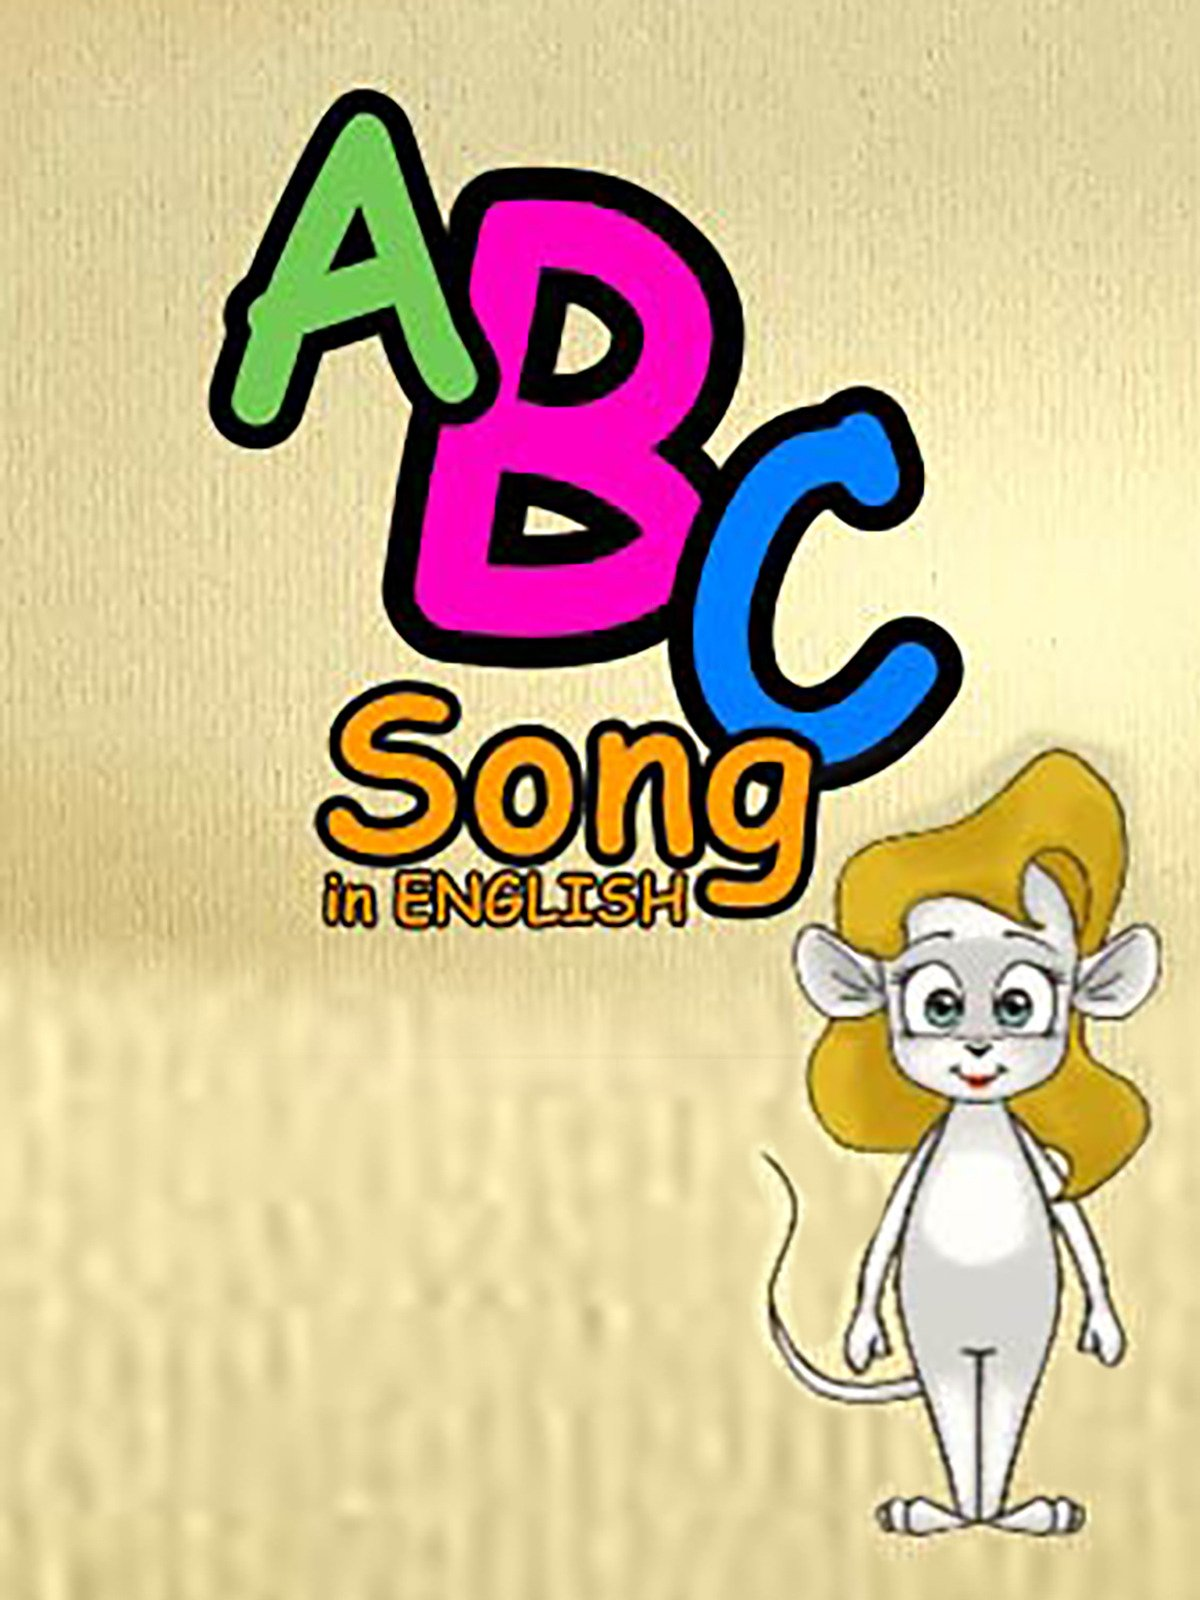 Clip: ABC Song in English